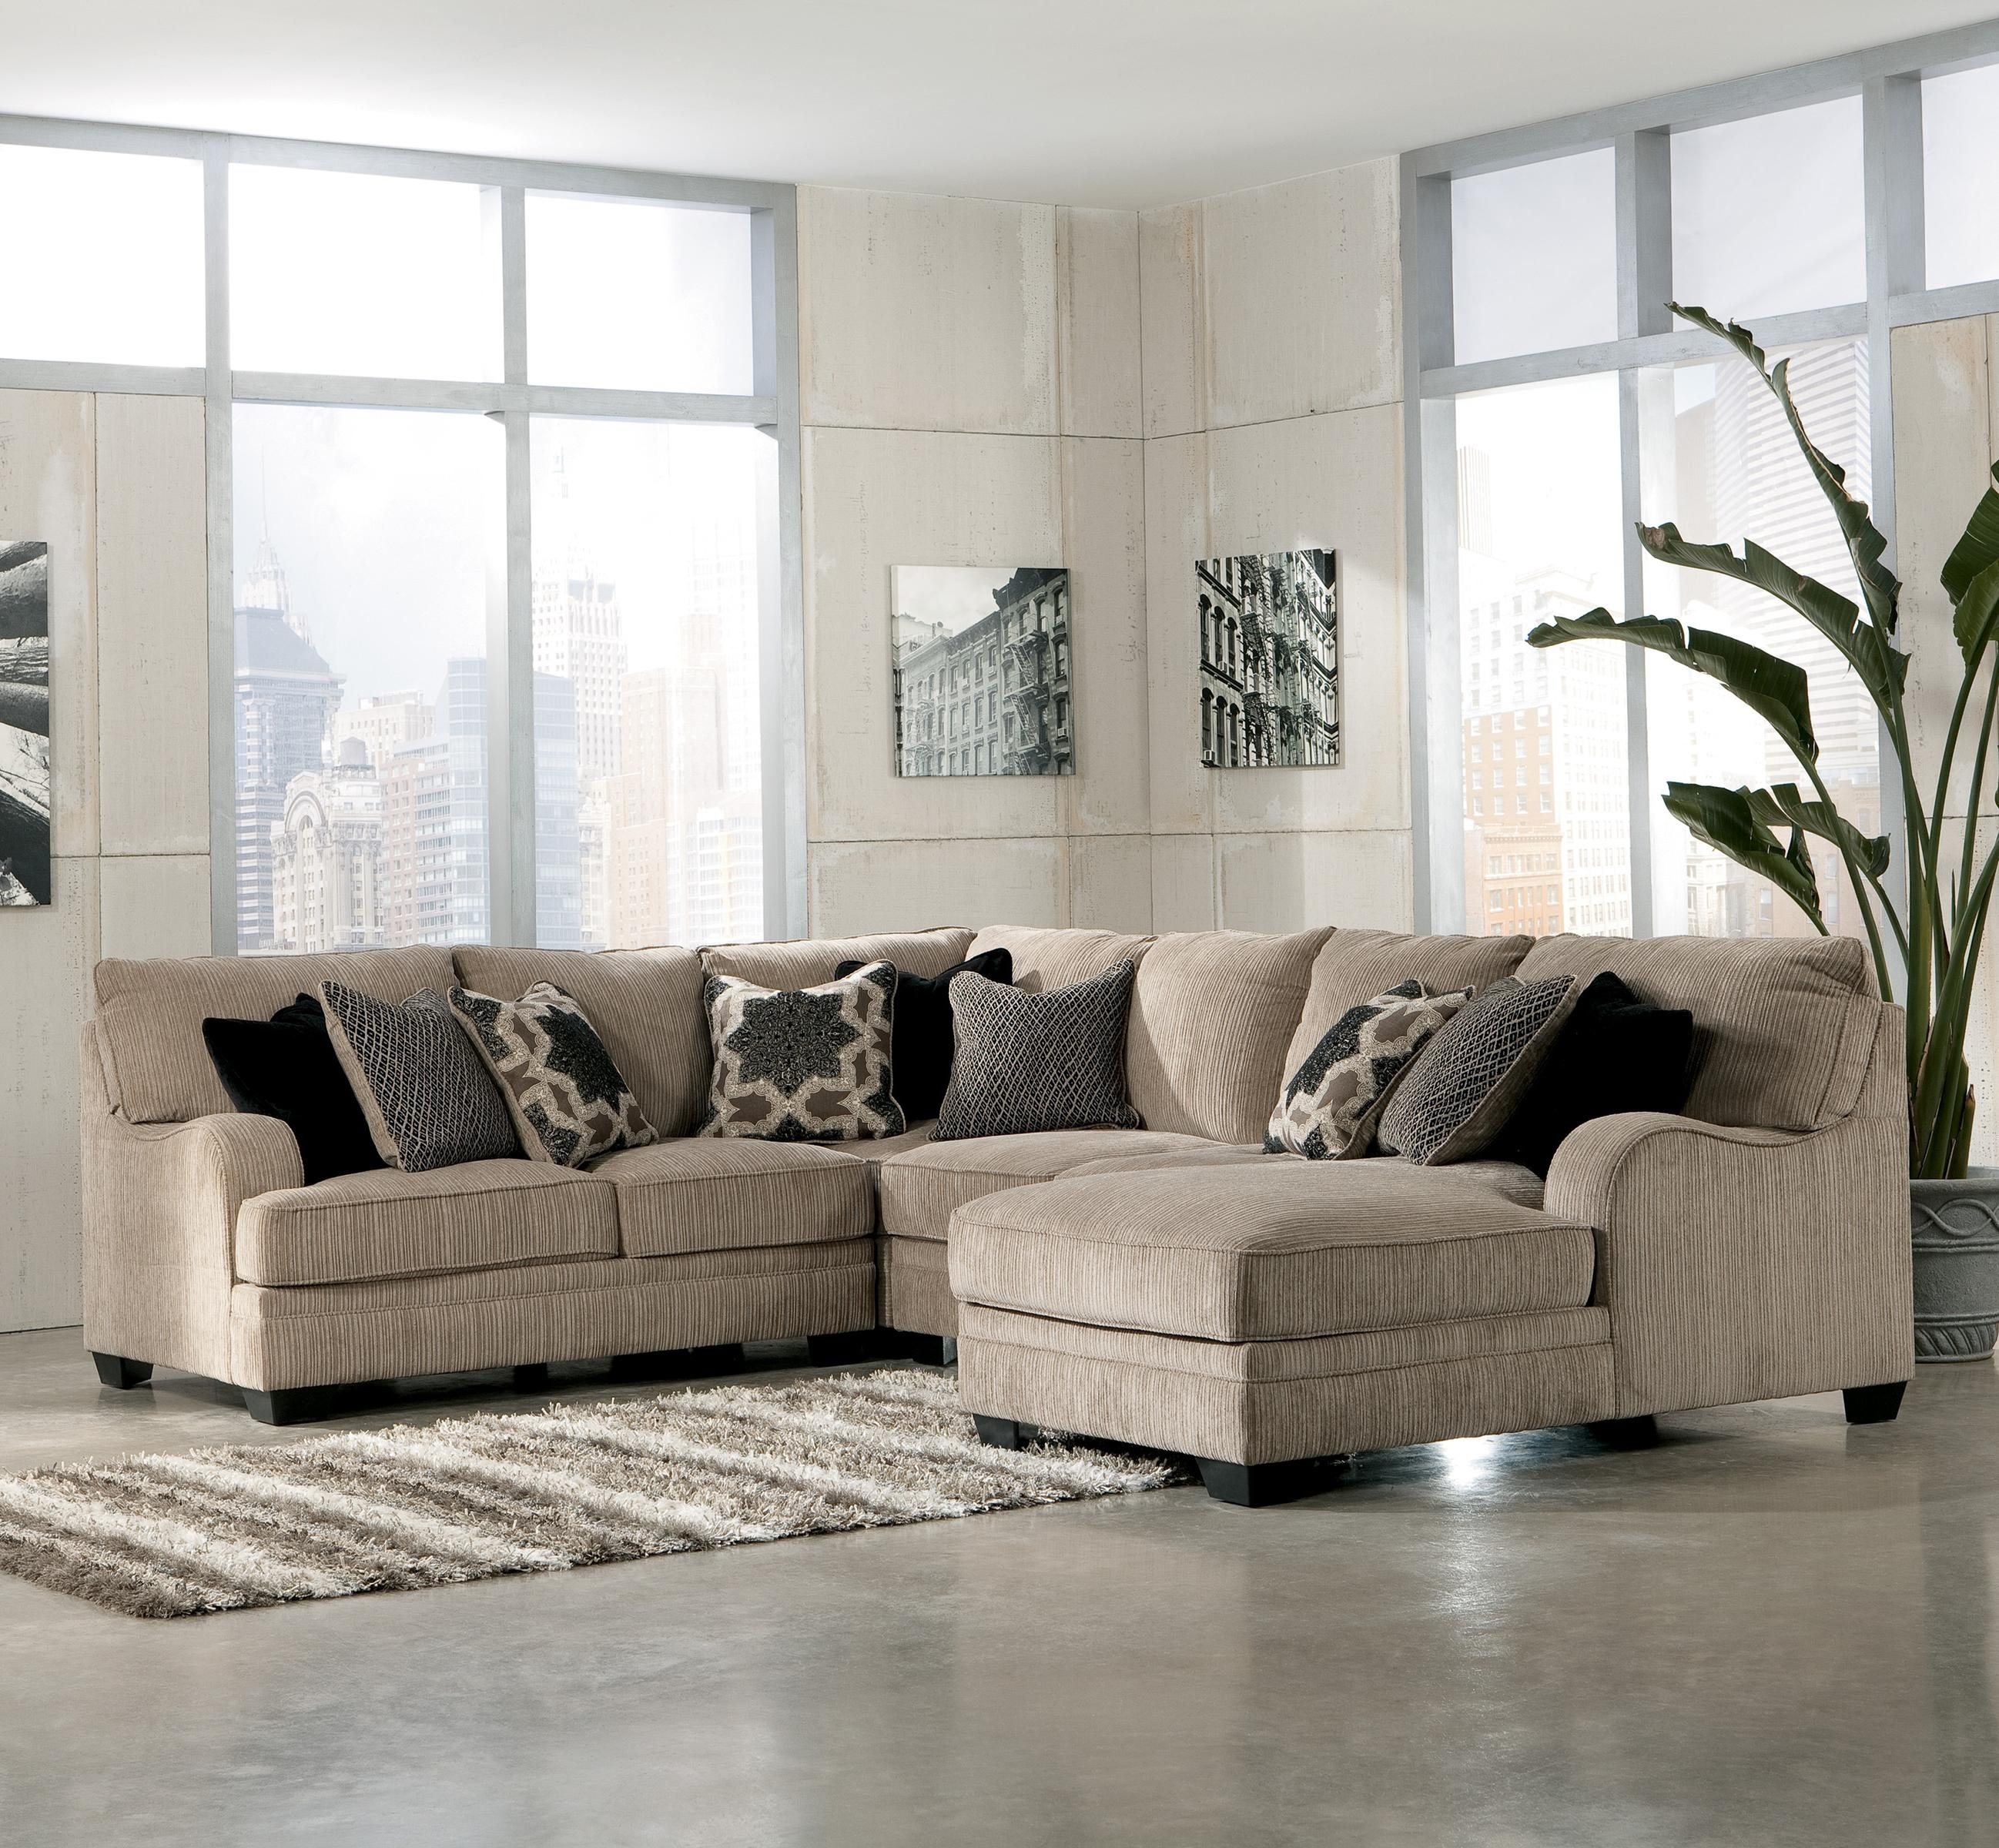 Signature Designashley Katisha - Platinum 4-Piece Sectional Sofa in Gordon 3 Piece Sectionals With Raf Chaise (Image 30 of 30)